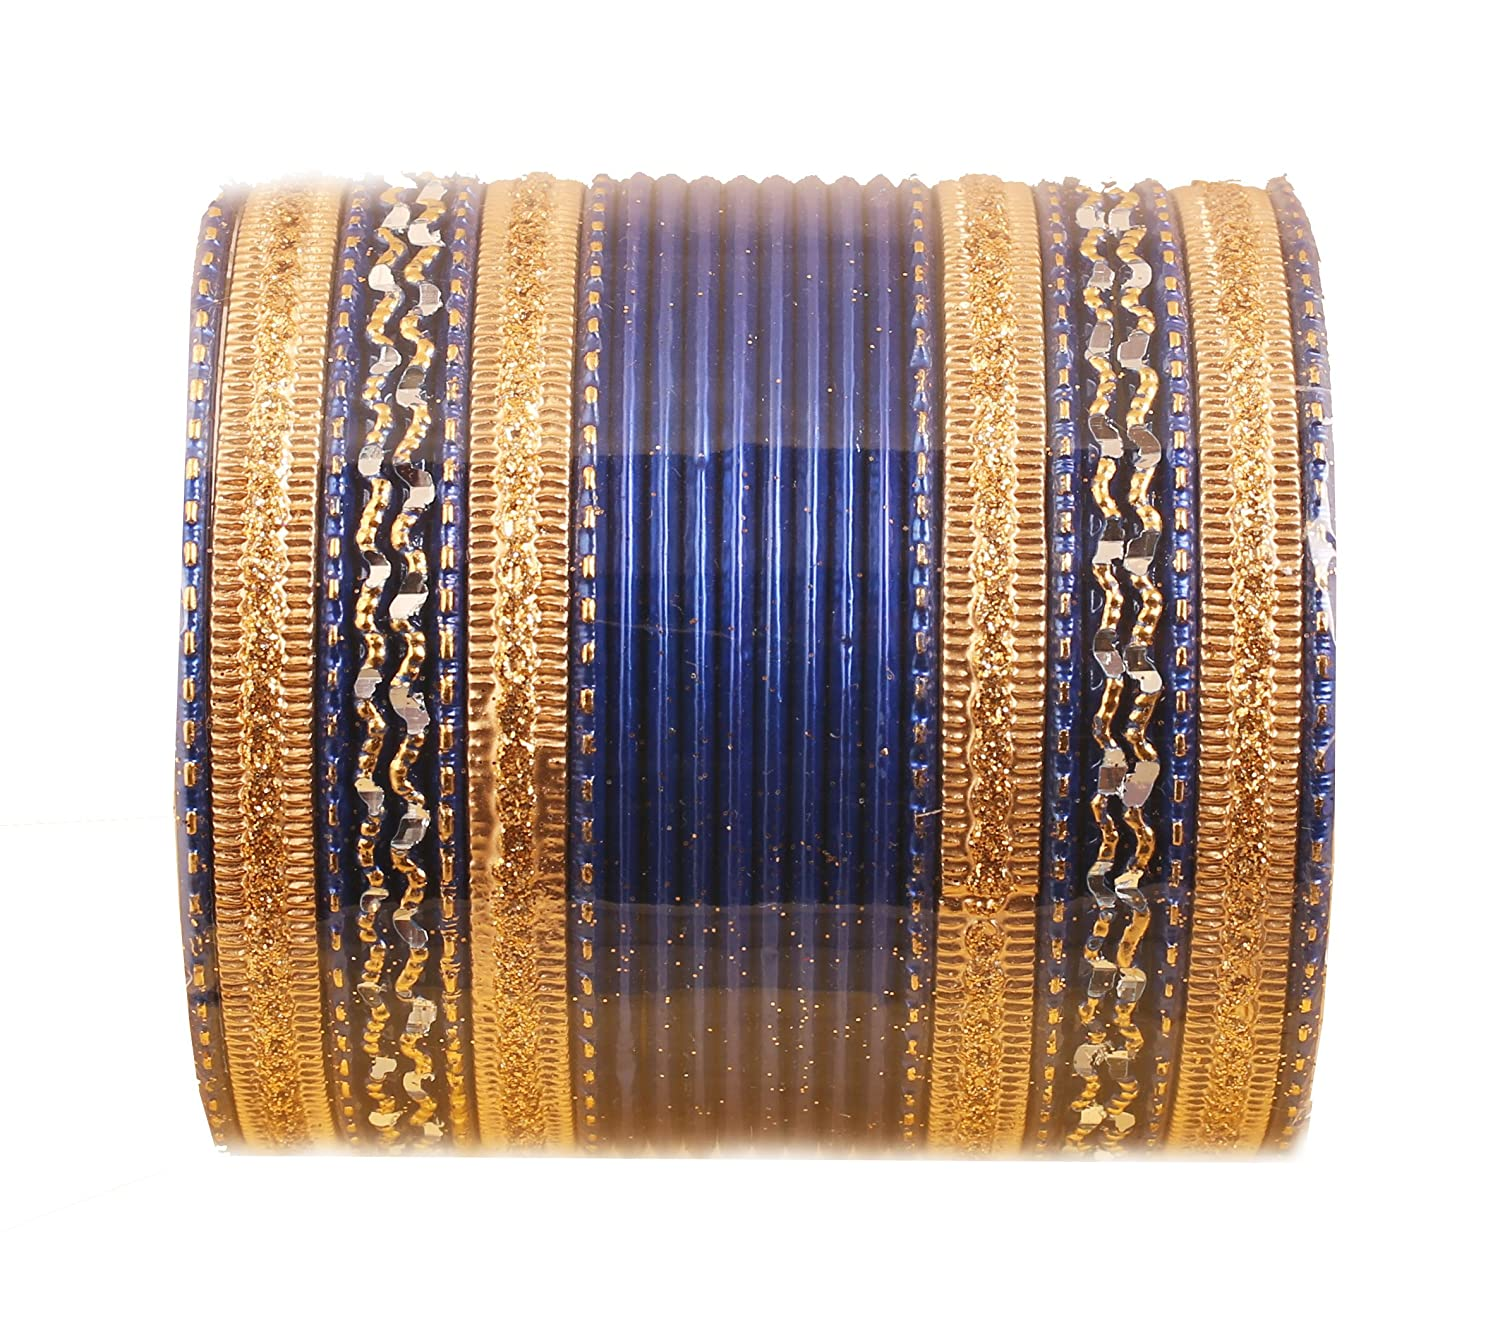 Touchstone New Colorful 2 Dozen Bangle Collection Indian Bollywood Alloy Metal Textured Designer Jewelry Special Large Size Bangle Bracelets Set of 24 in Antique Gold Tone for Women KRB--172F08----